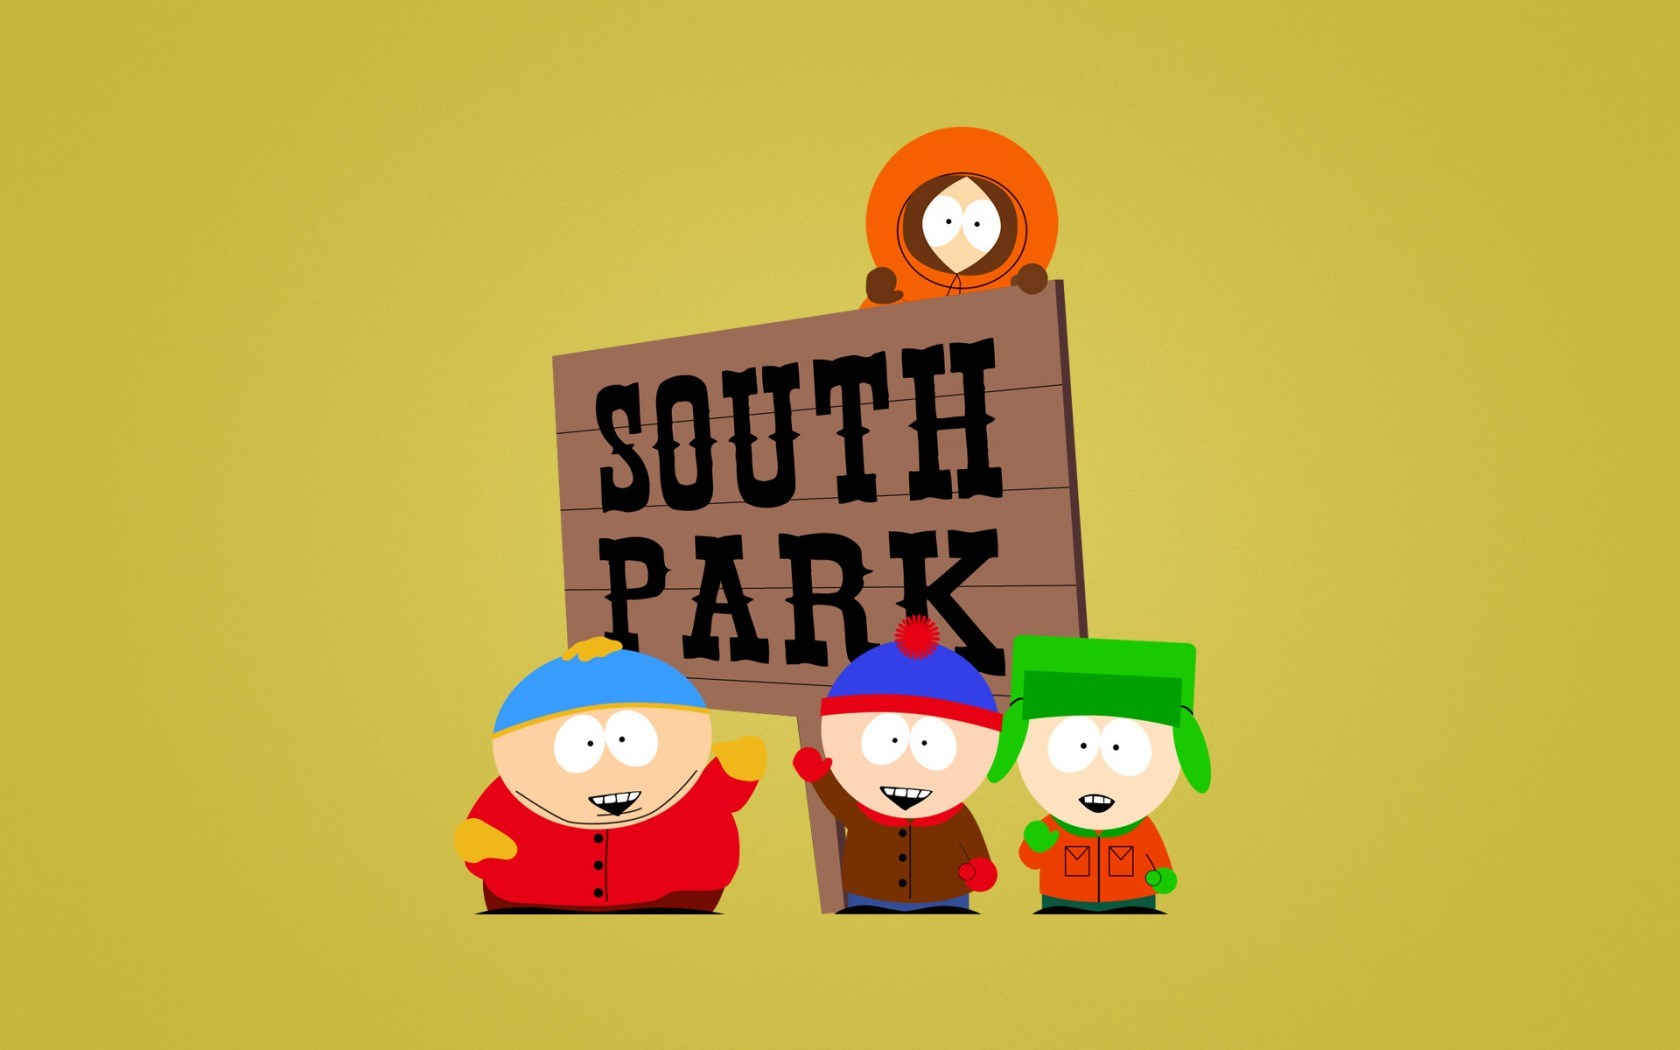 south park wallpaper 20563 1680x1050 px ~ hdwallsource